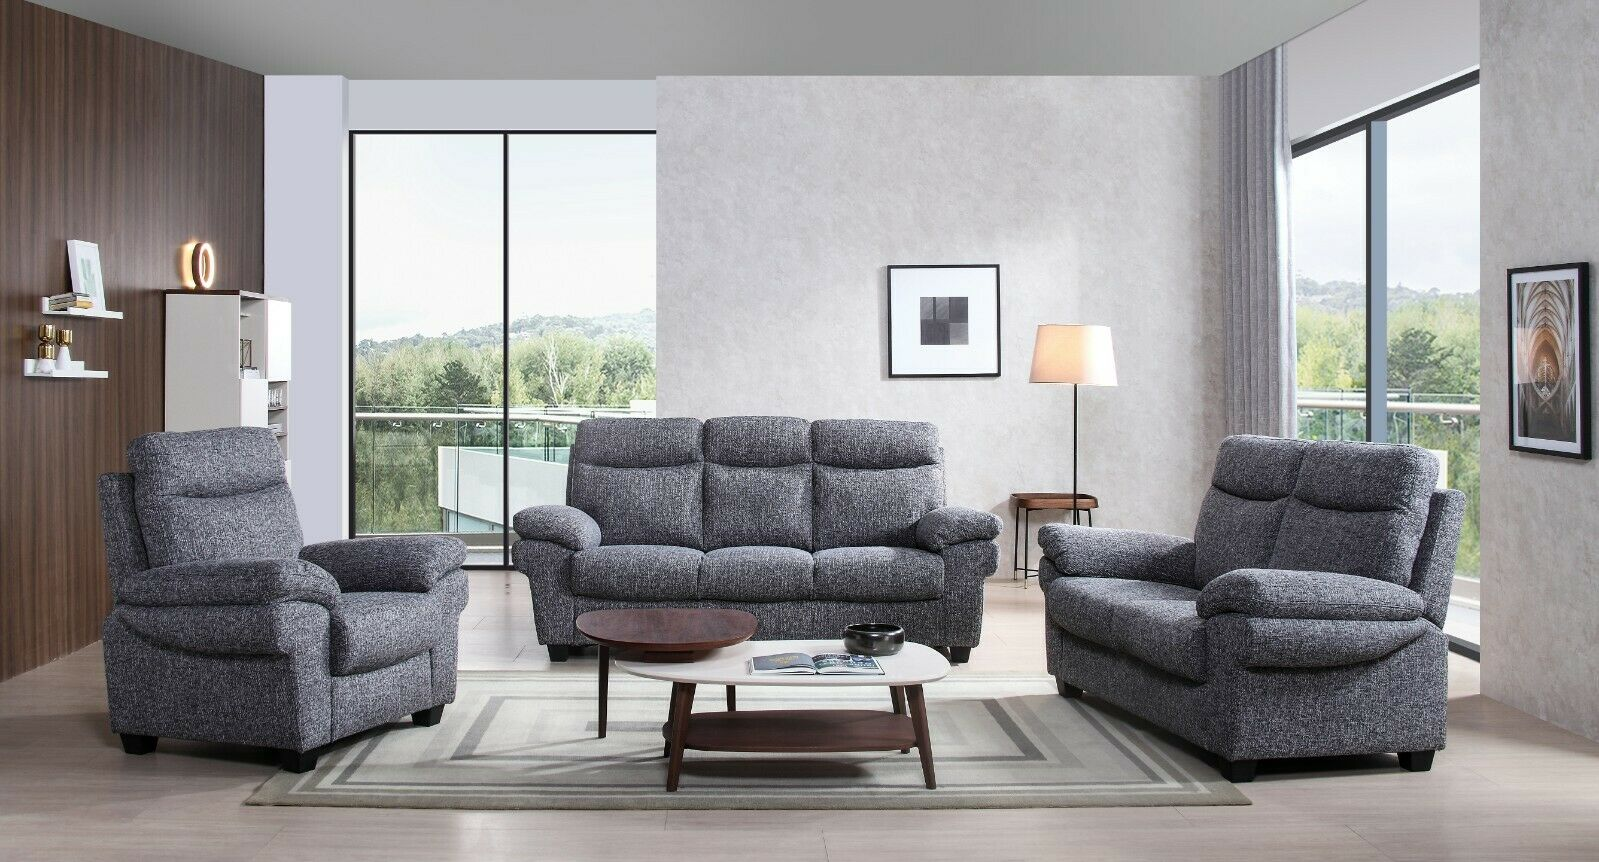 3 2 1 Sofa Set Luxury Tanya Sofa Suite Fabric Free Delivery